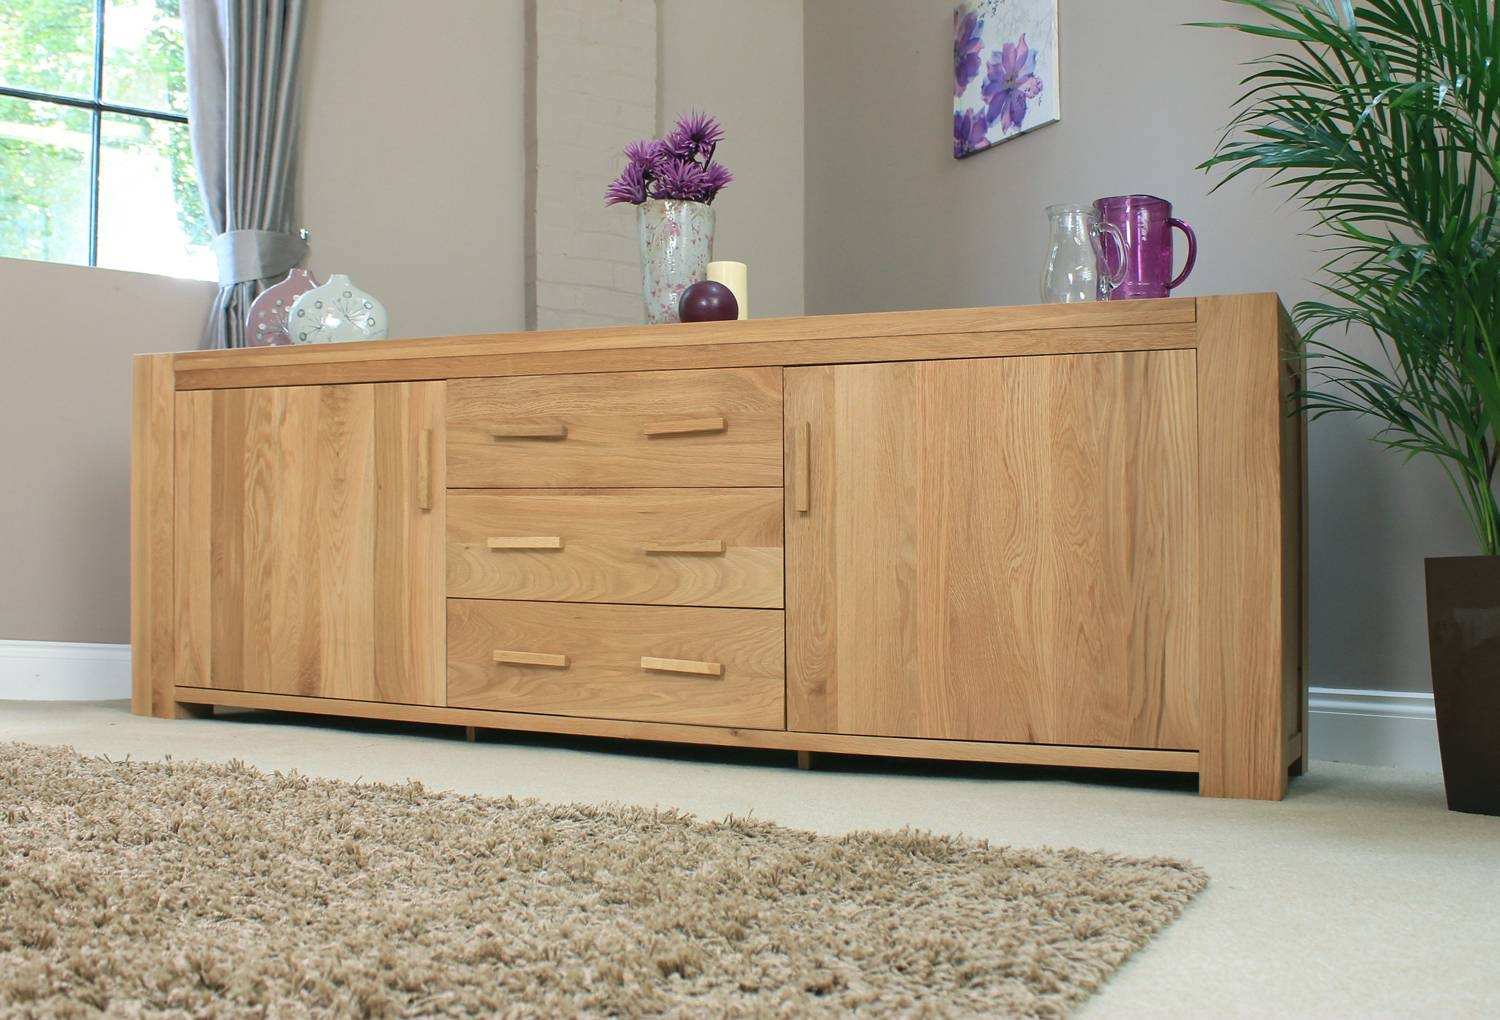 Sideboard : 76 Staggering Large Sideboards Picture Inspirations For Large Oak Sideboards (#12 of 15)